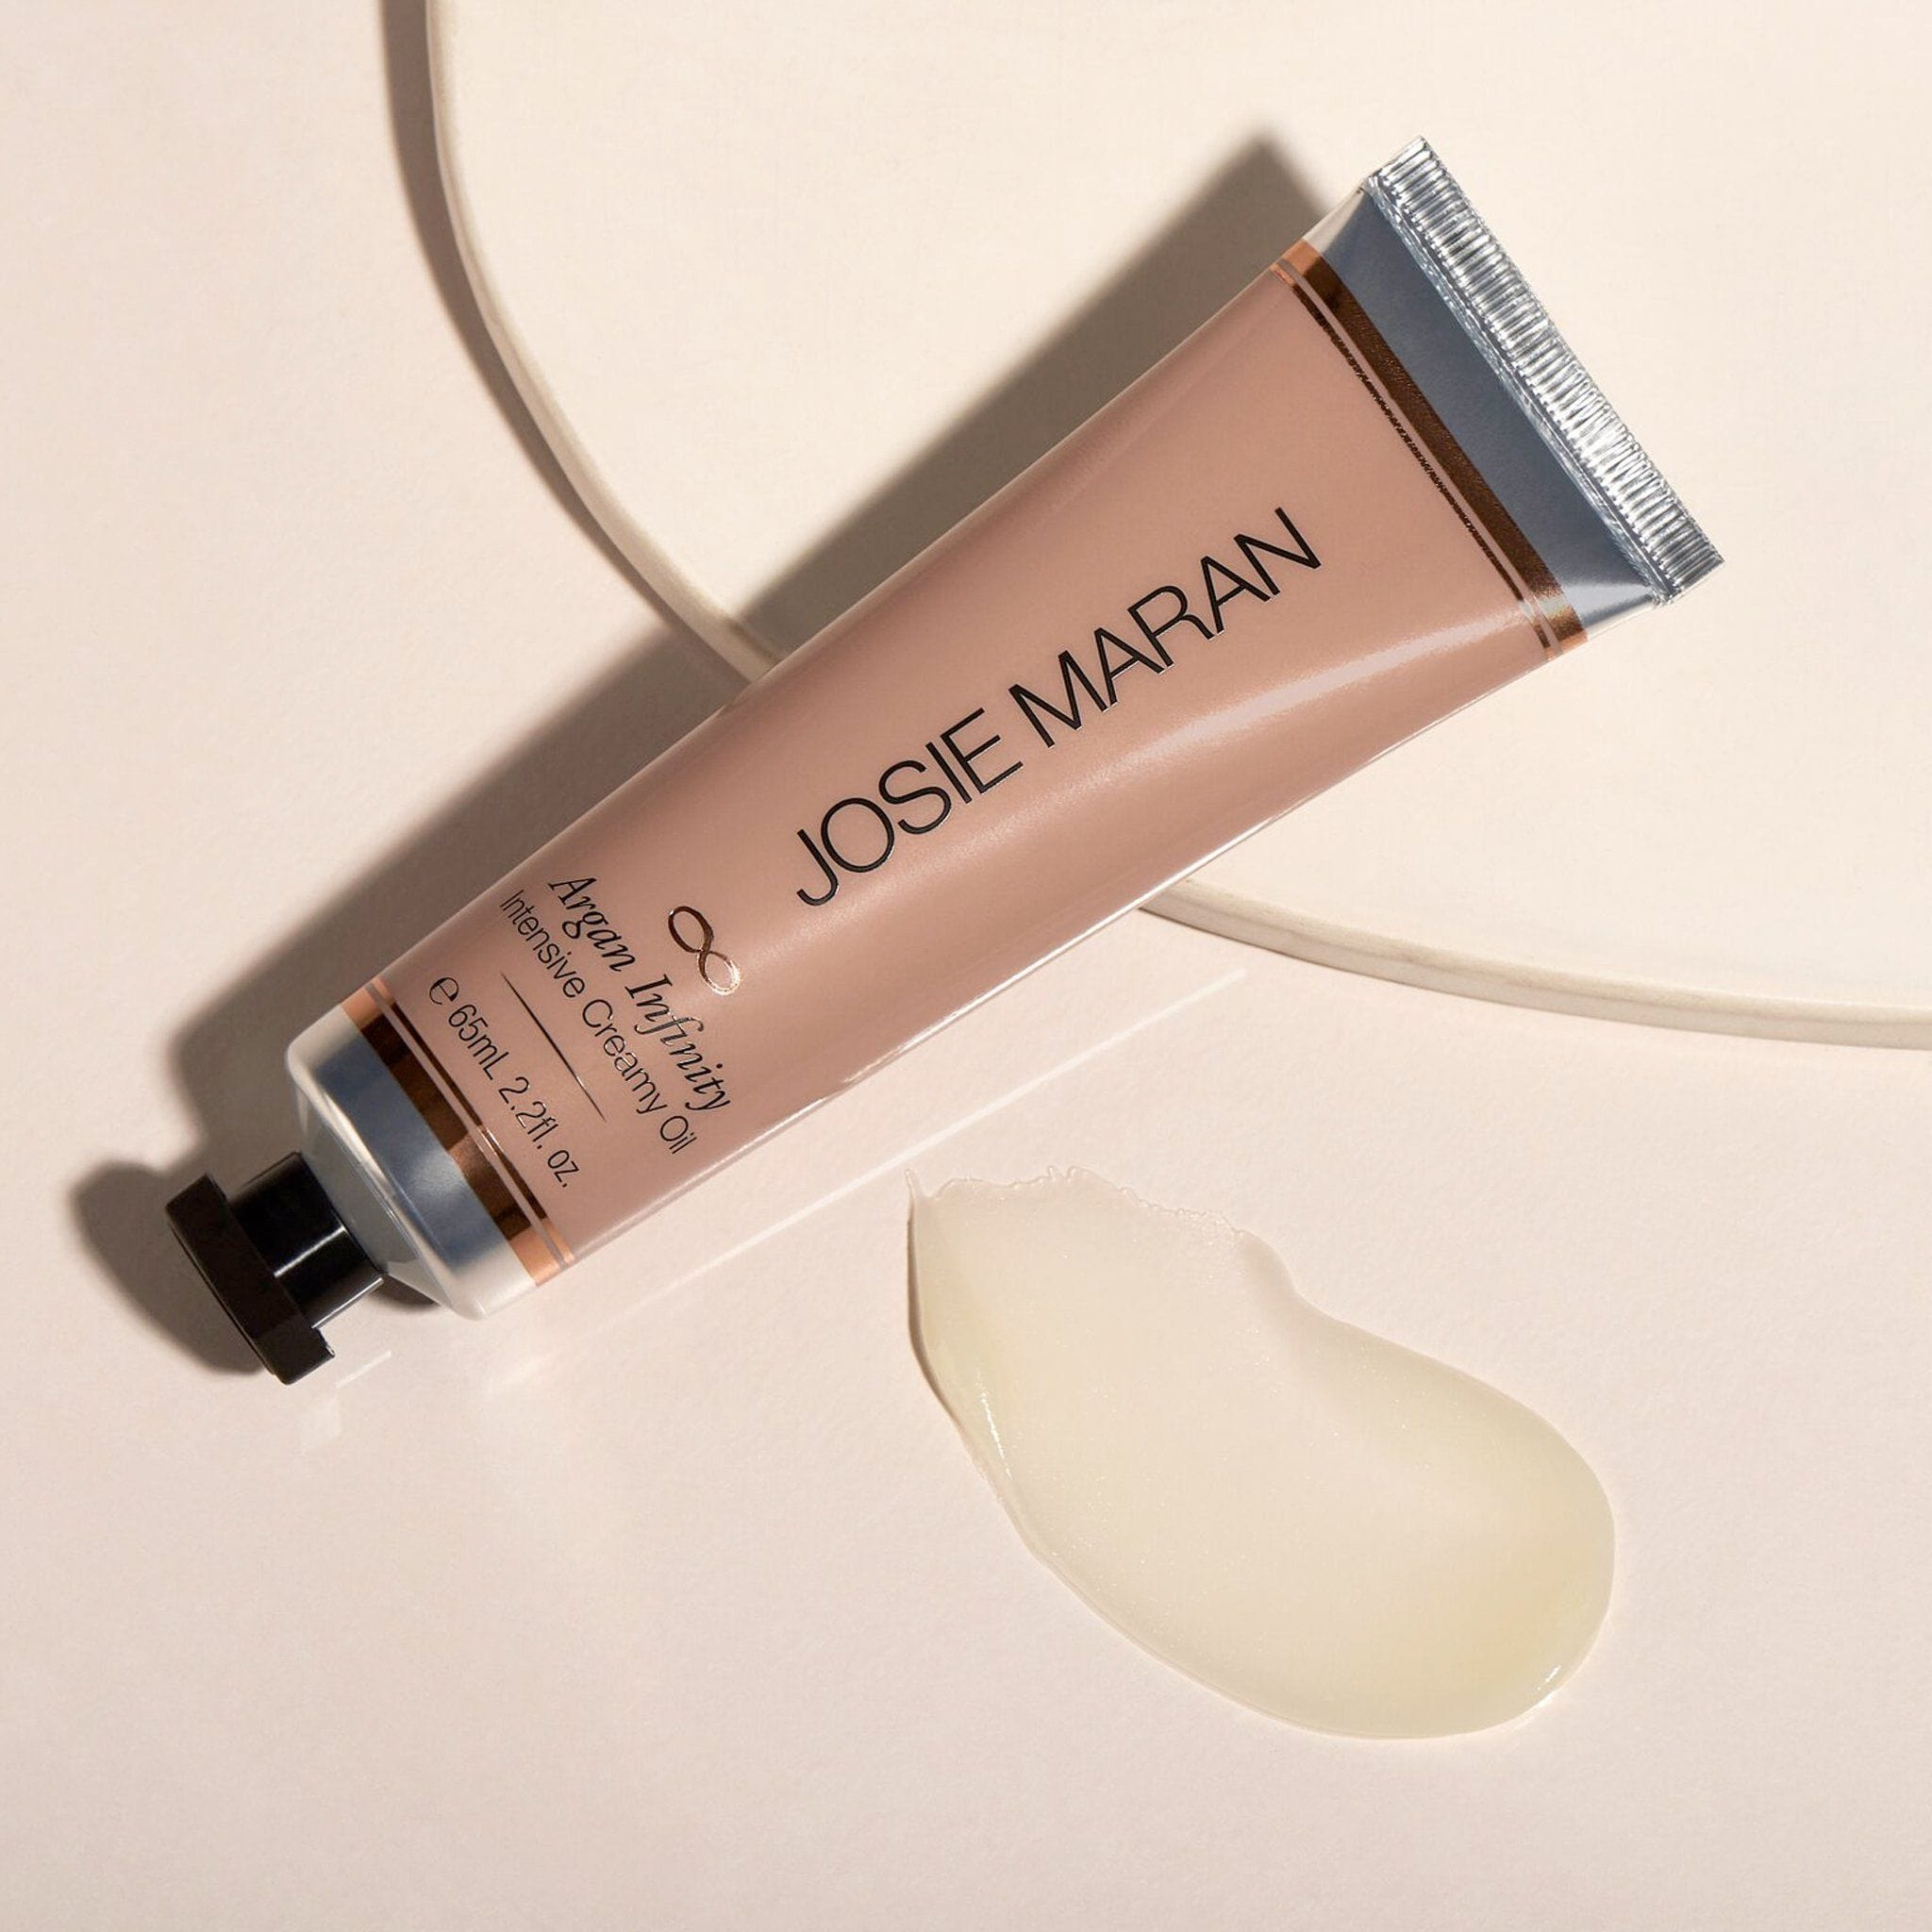 Argan Infinity Cream Intensive Creamy Oil